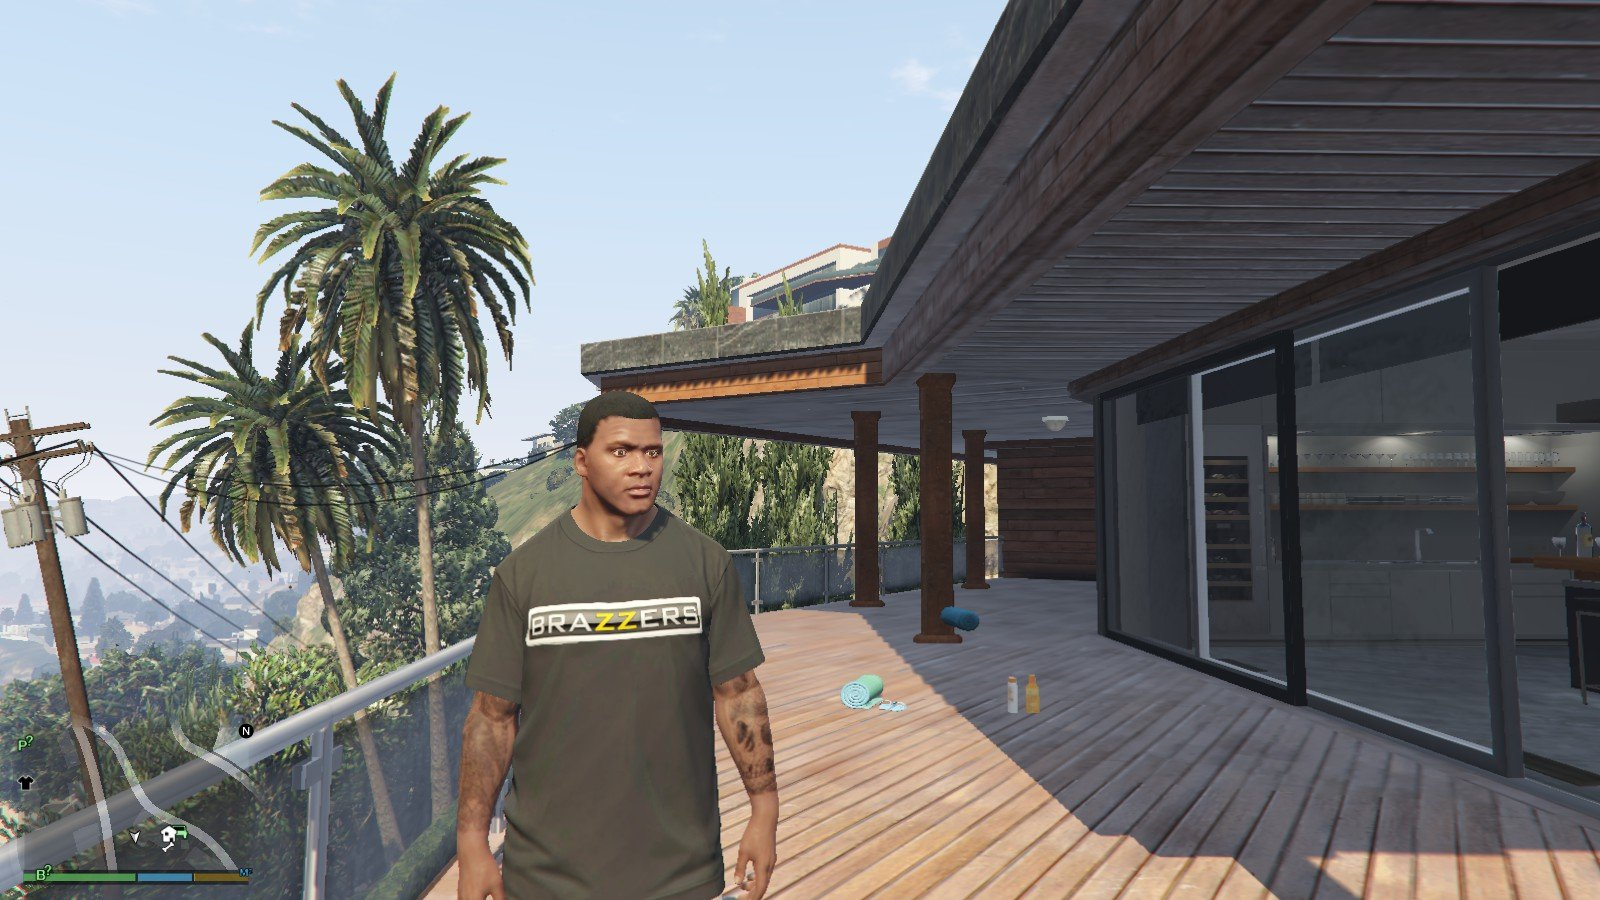 Brazzer T-Shirt GTA5 Mods (5)